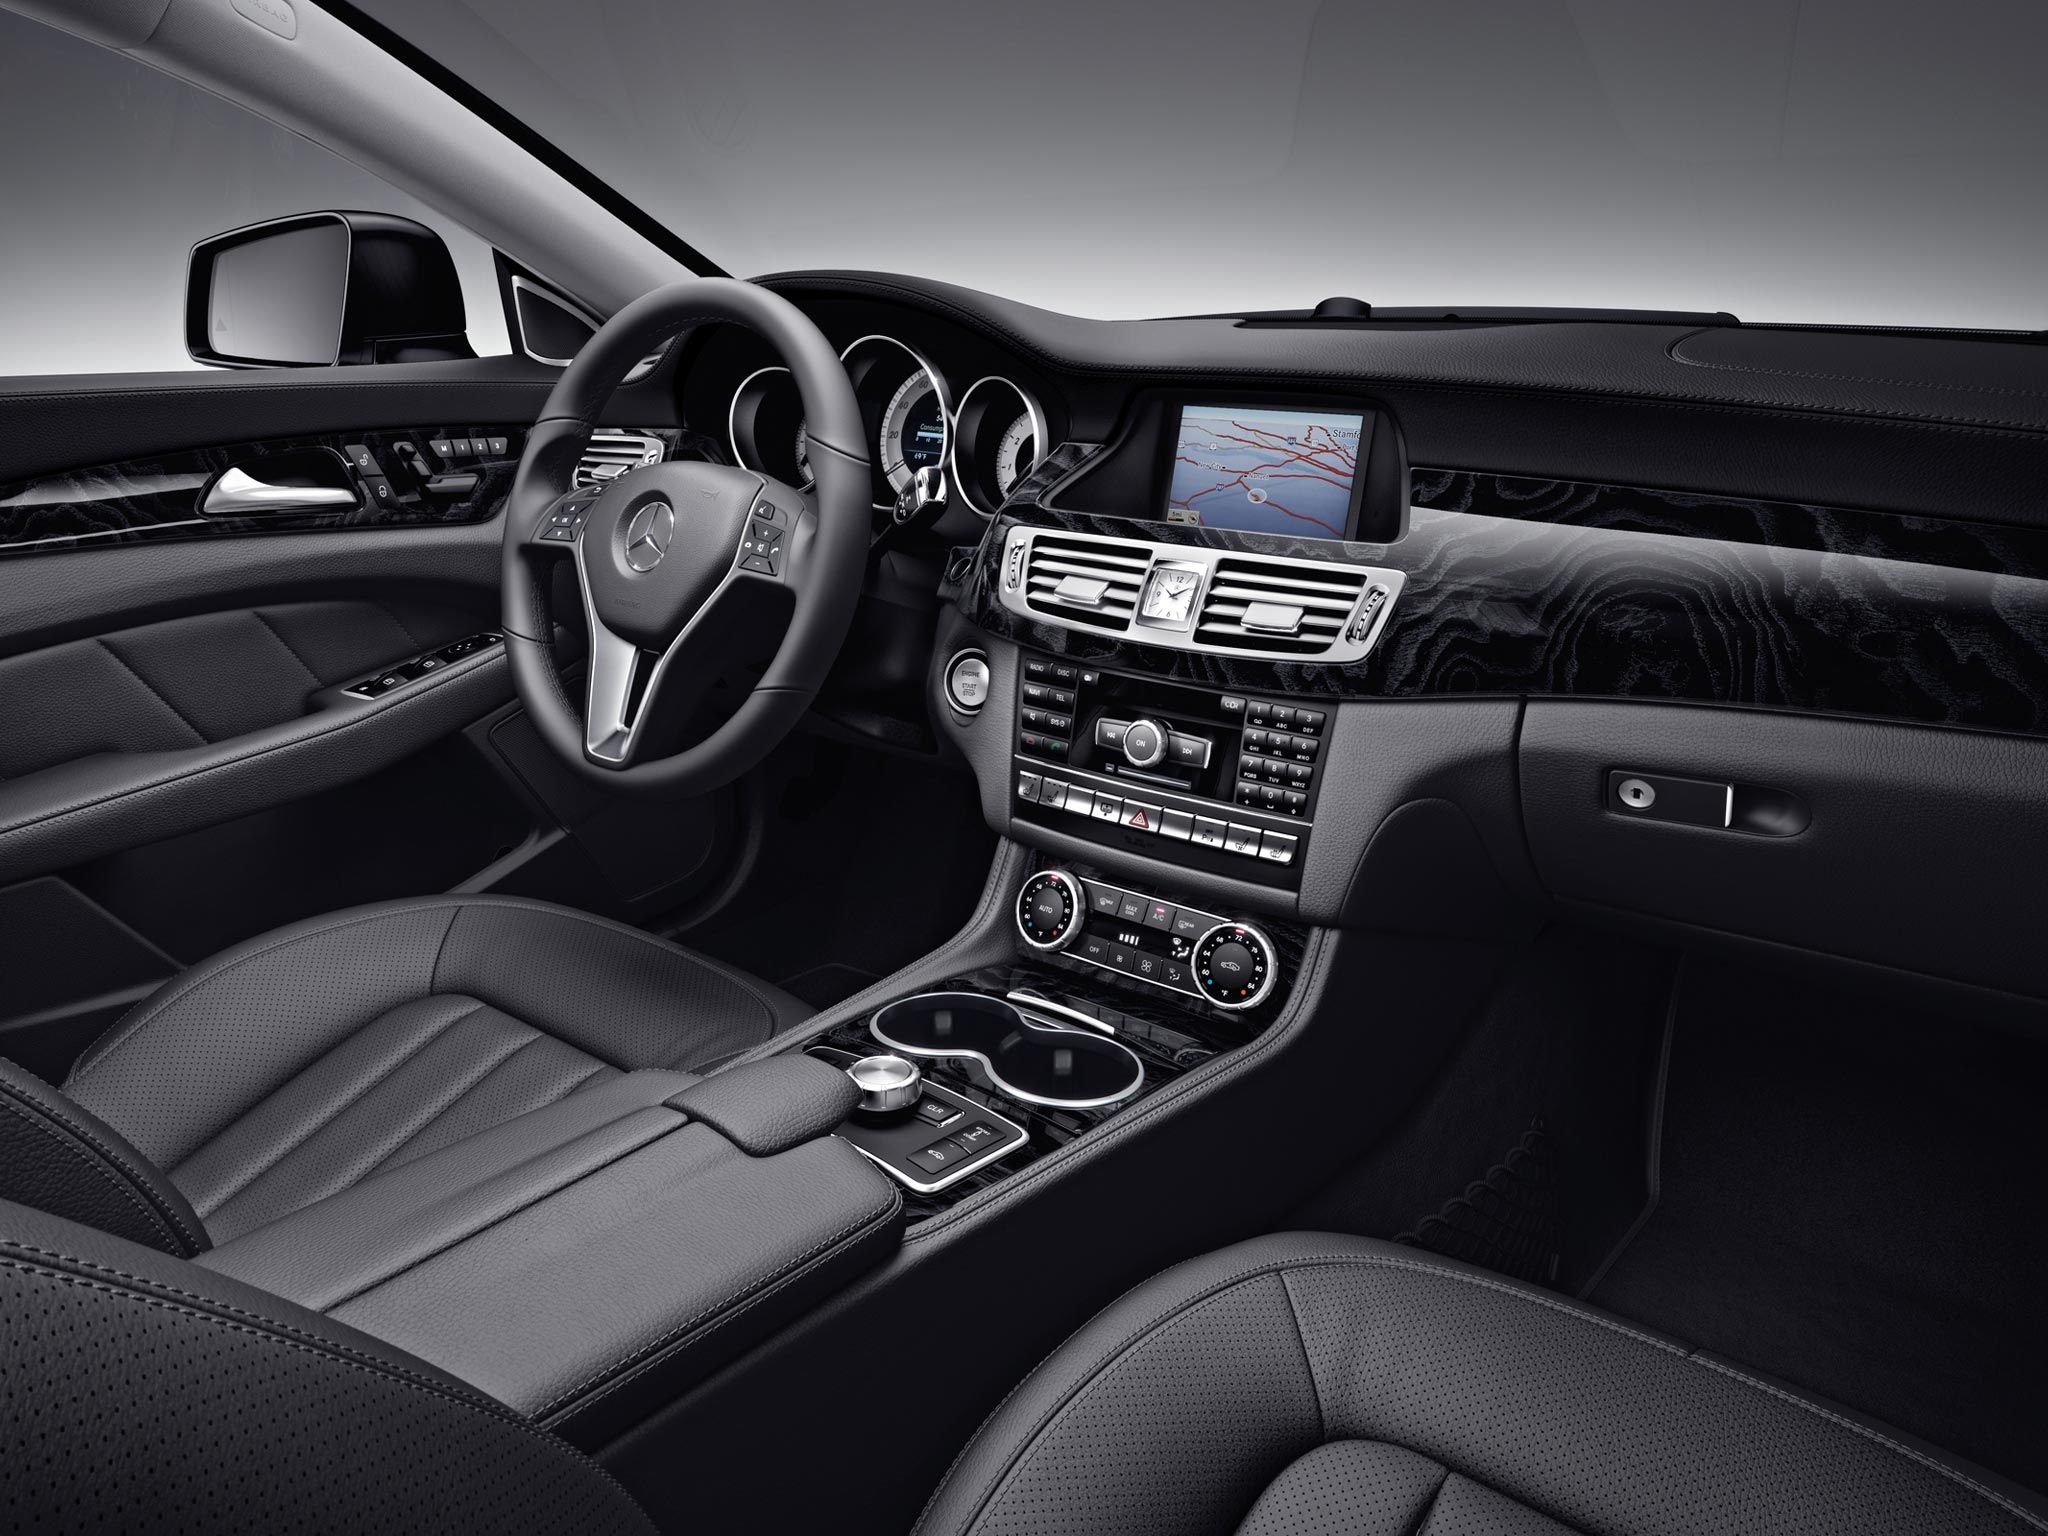 mercedes benz cls550 interior shown with black leather and. Black Bedroom Furniture Sets. Home Design Ideas